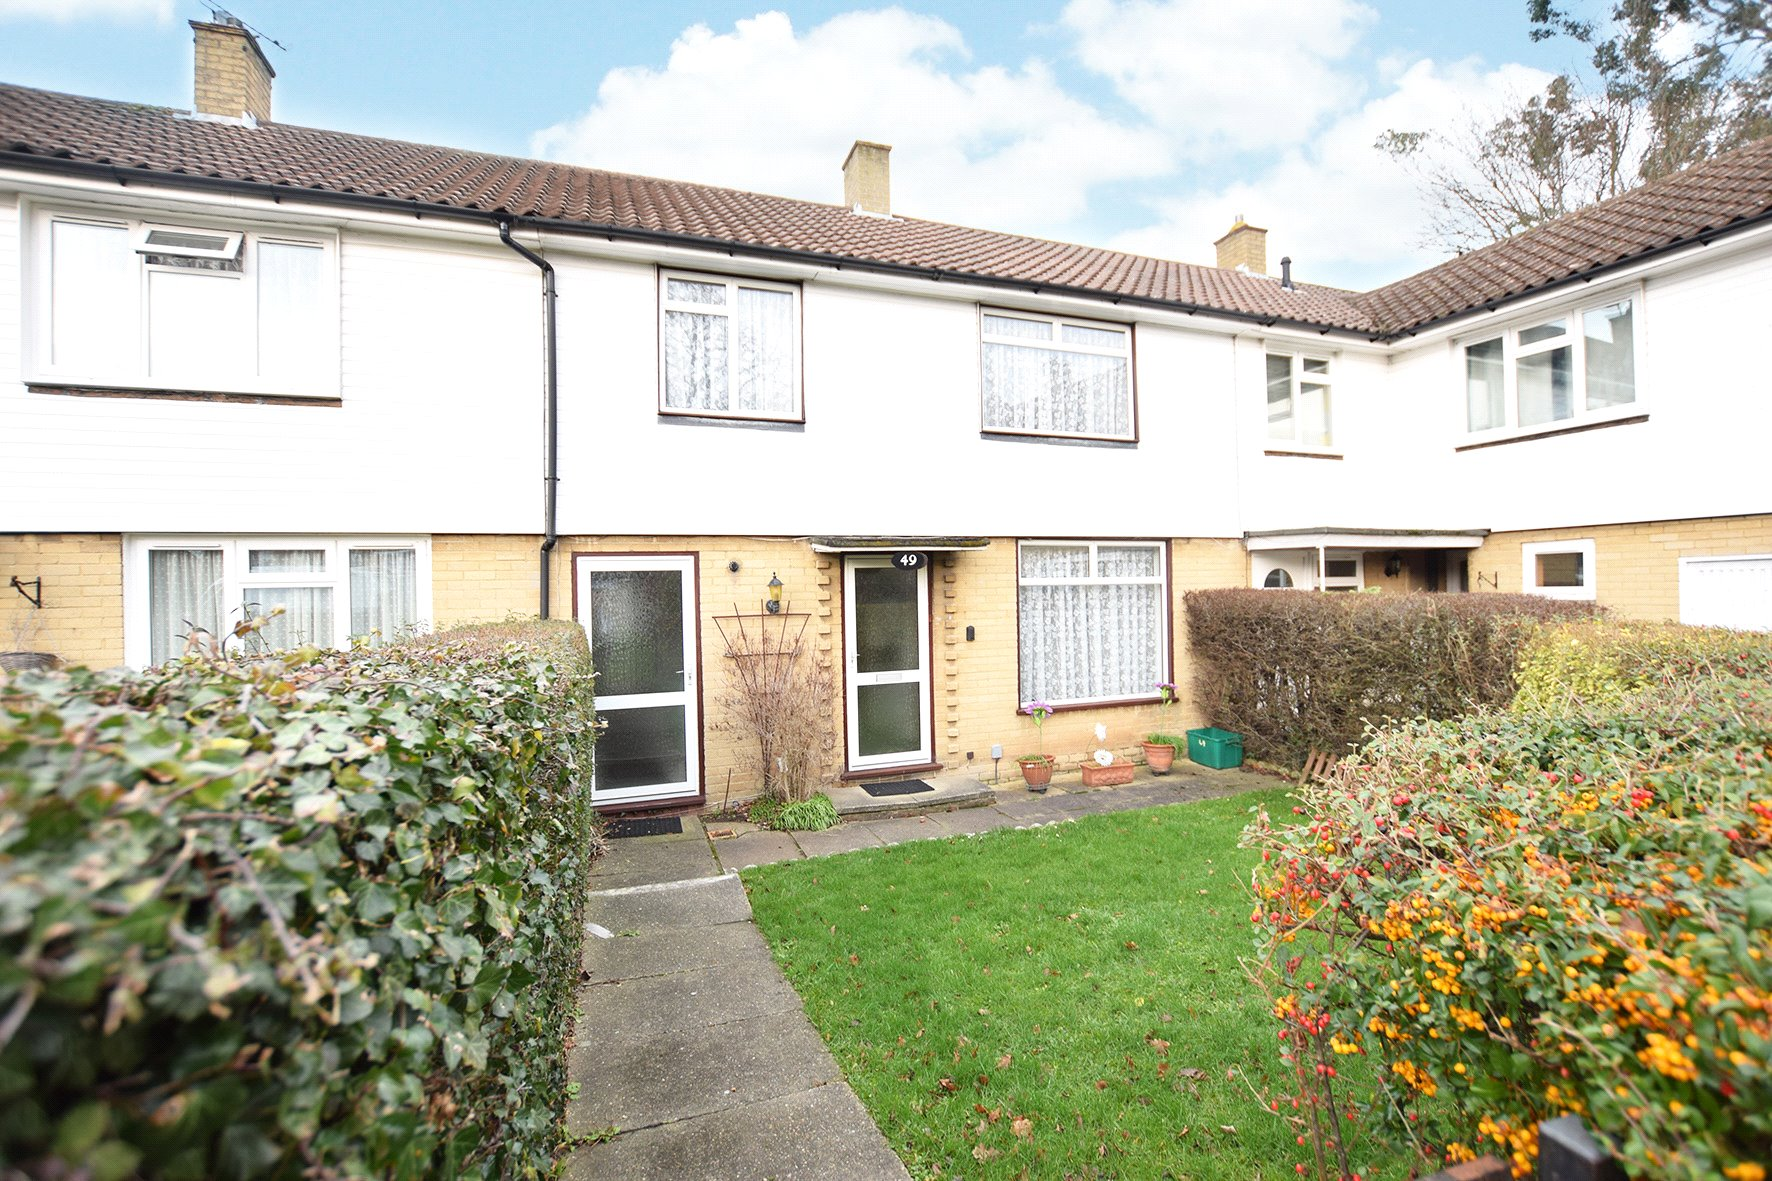 3 Bedrooms Terraced House for sale in Agar Crescent, Bracknell, Berkshire, RG42